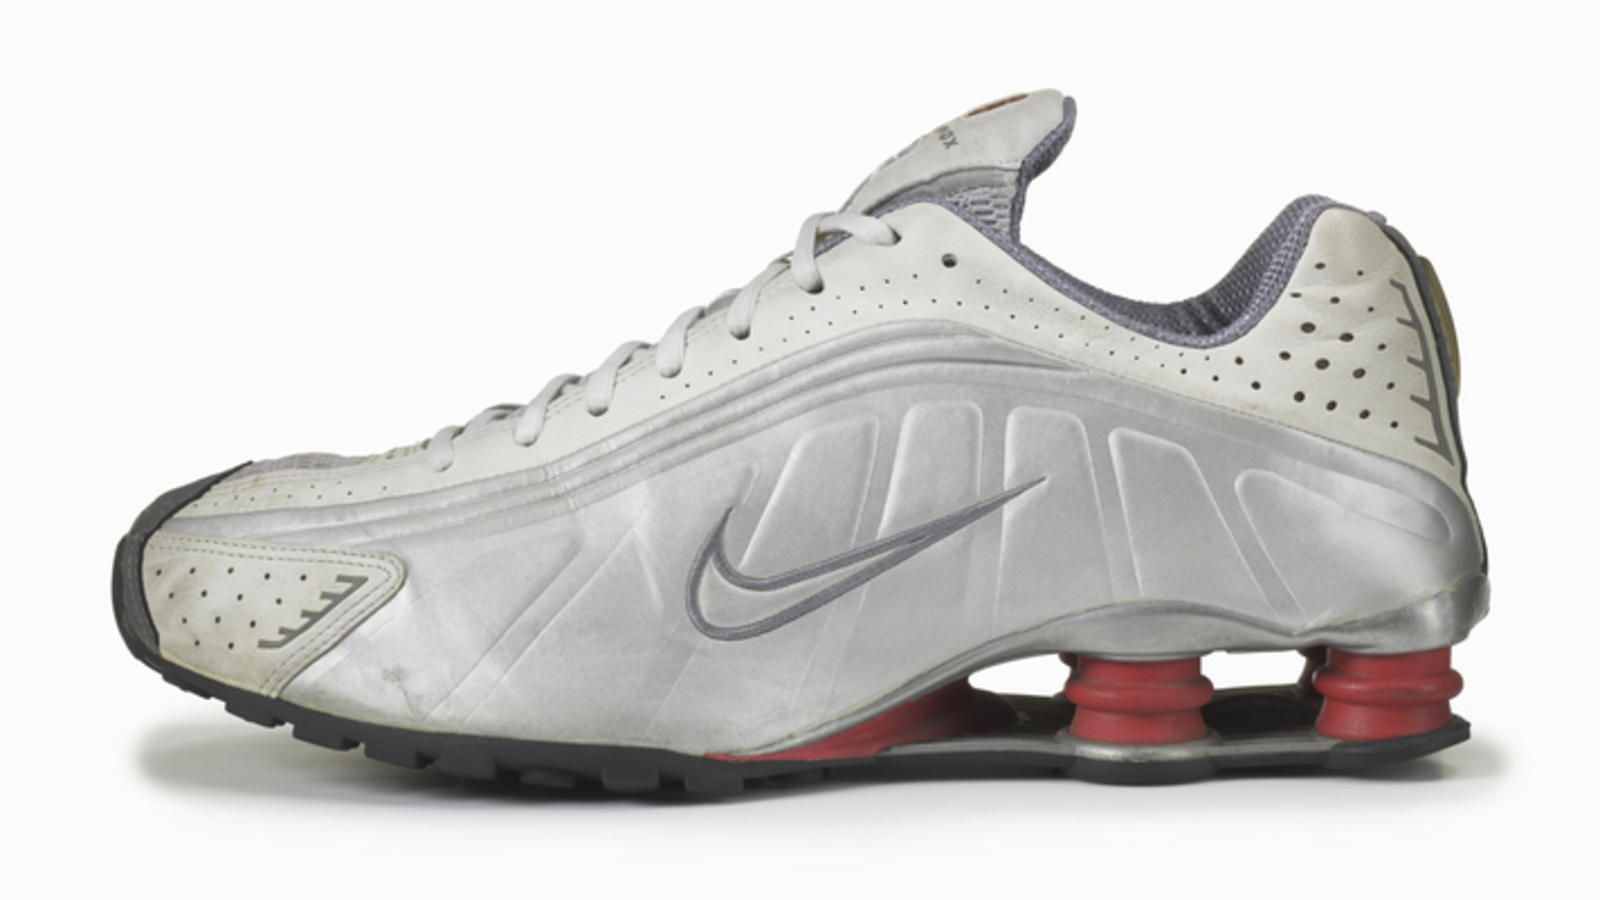 low priced af5c5 e5a4a Nike Shox Shoes   Buy Nike Sneakers   Shoes   Air force 1, Air max ...